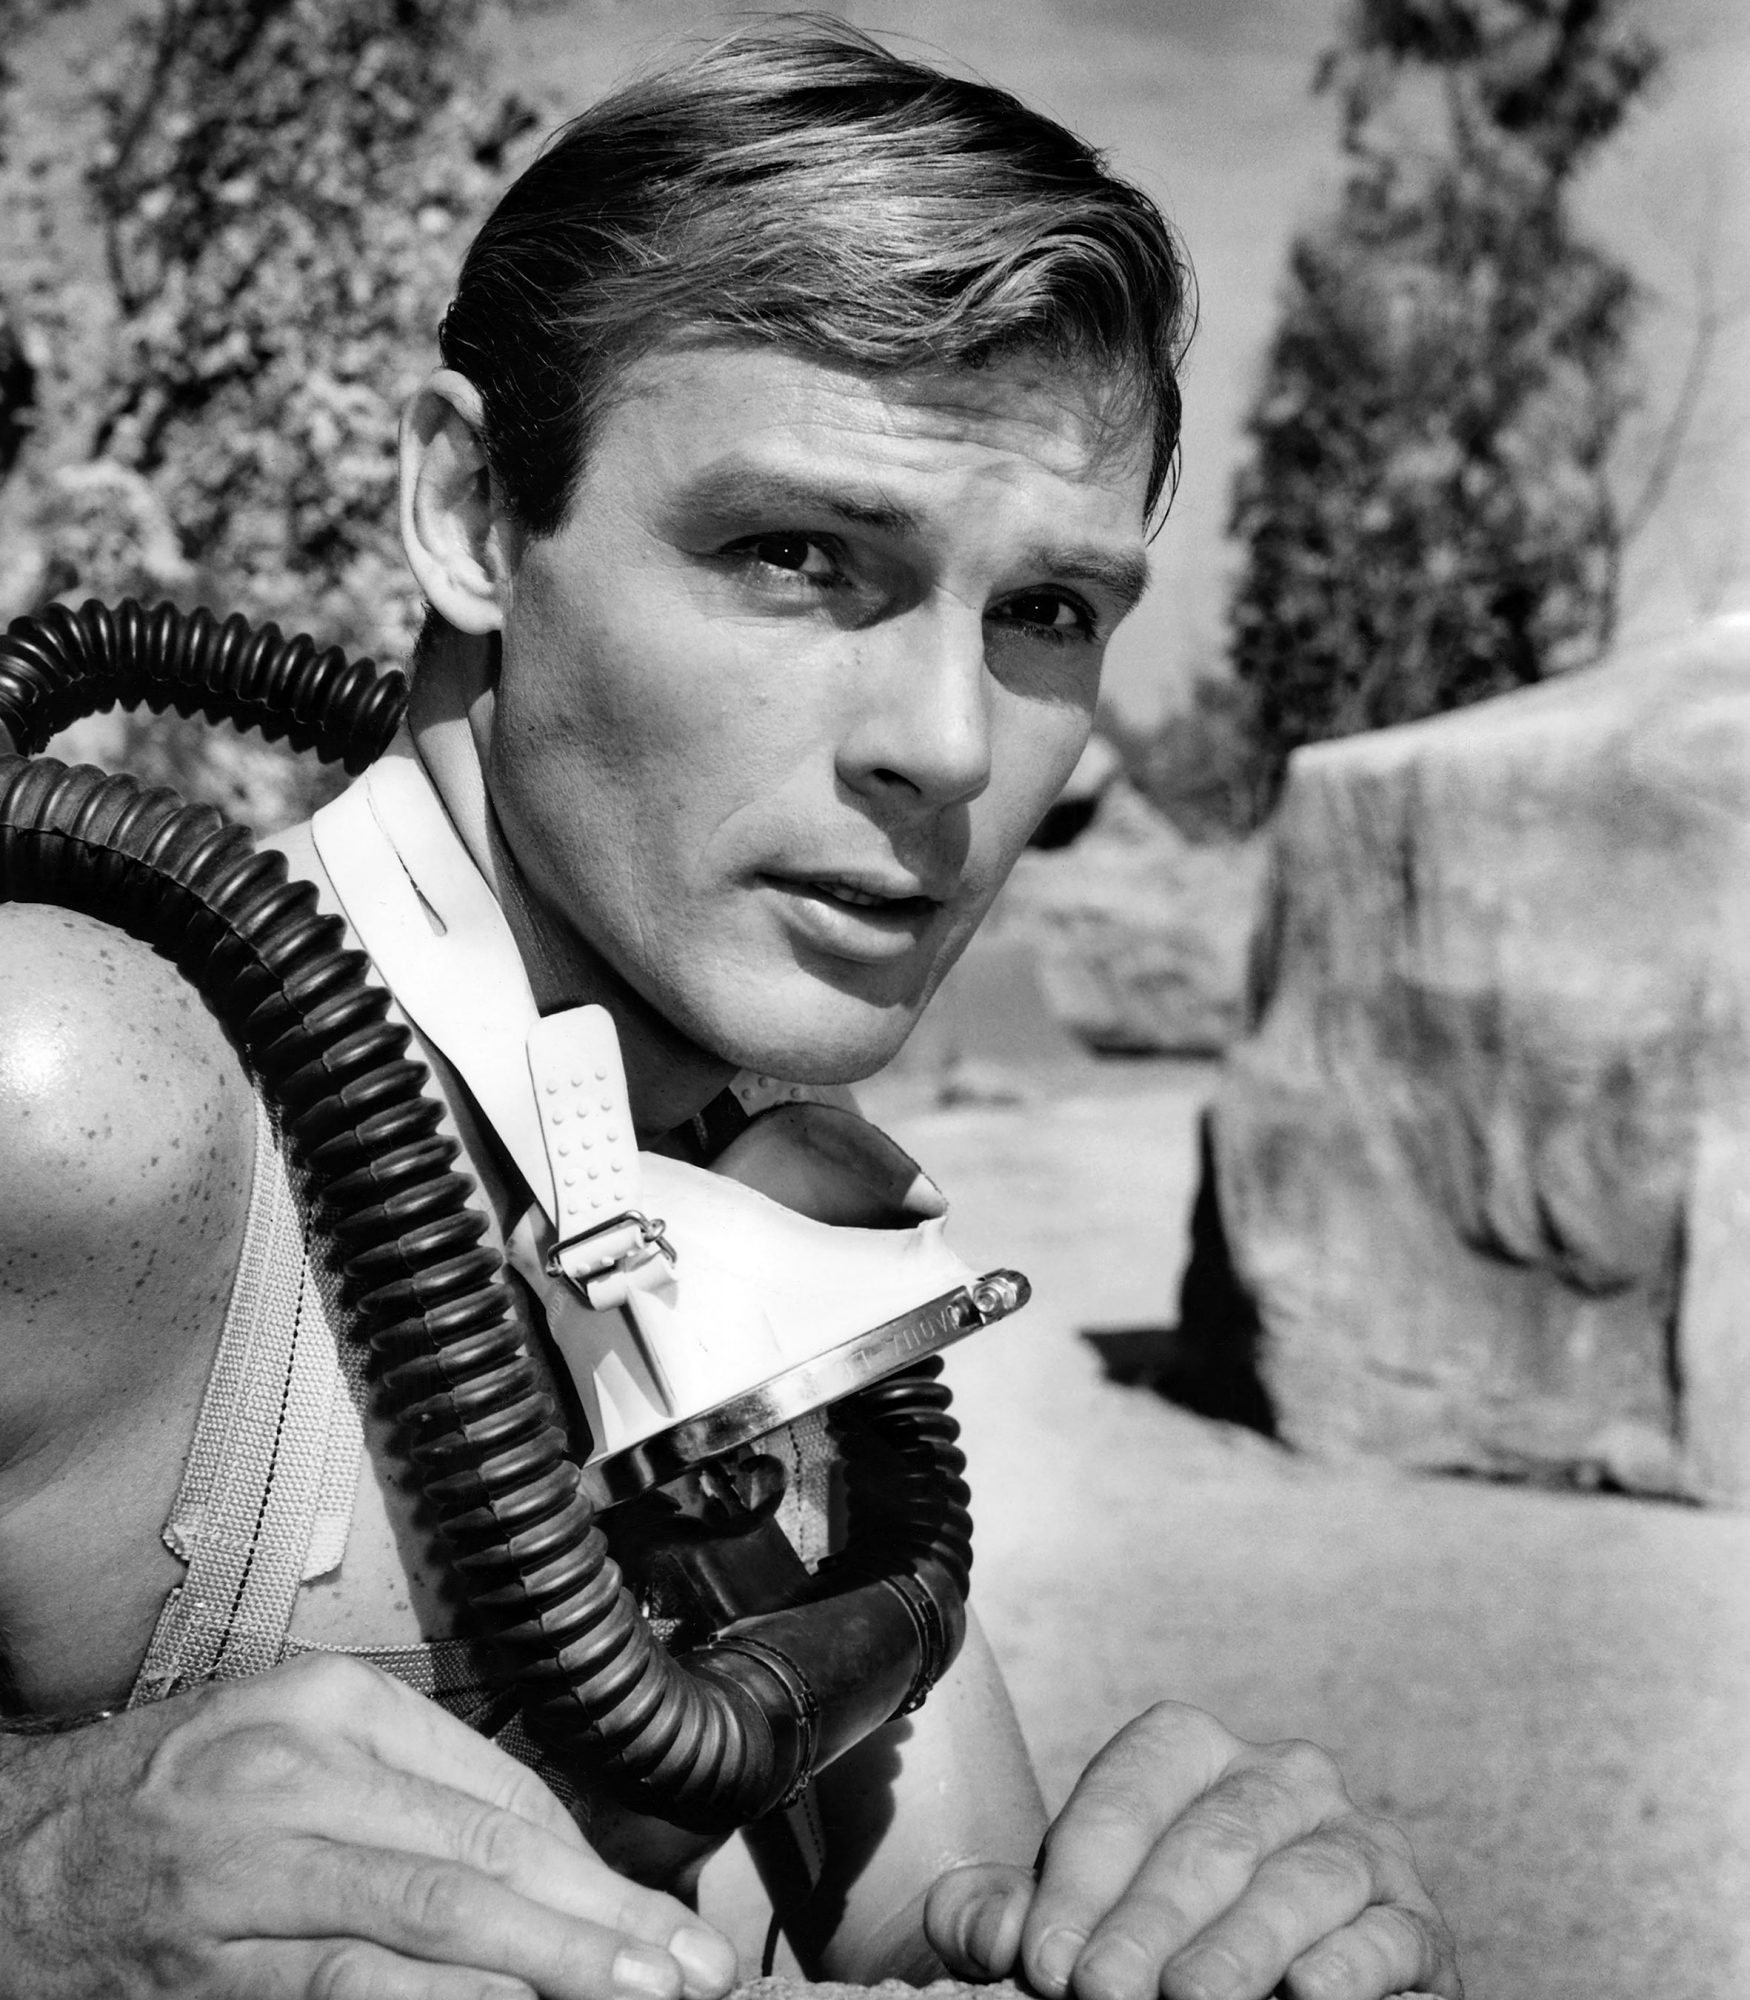 Adam West getting ready to explore an underwater cave, ca. 1961